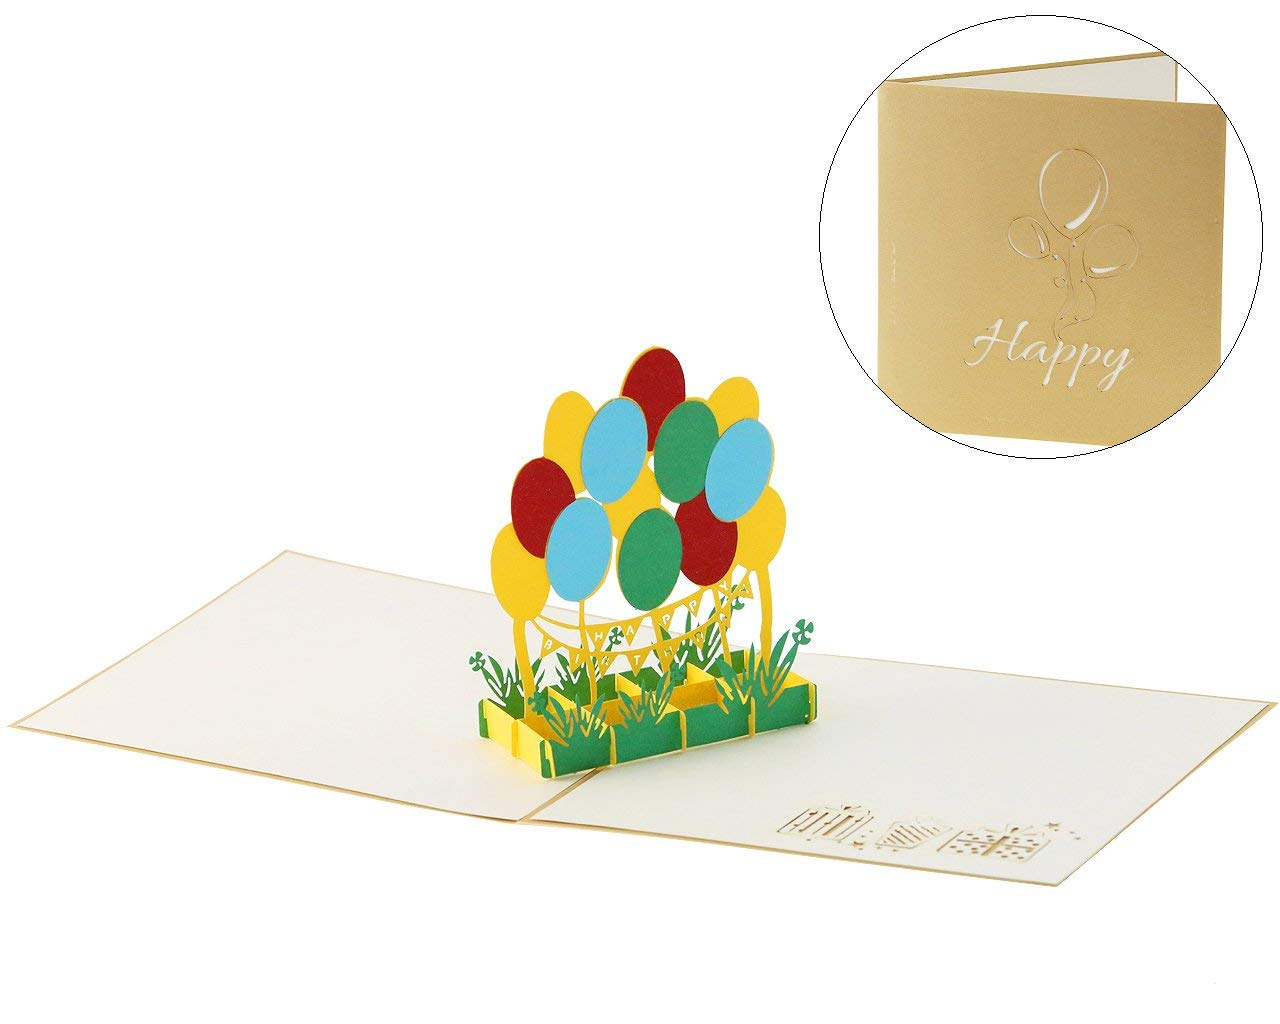 Paper Envelopes Nice Creative Hollow Out Kraft Paper Small Card With Envelope Birthday Holiday Greeting Message Card Christmas New Year Gift Card Superior Materials Mail & Shipping Supplies